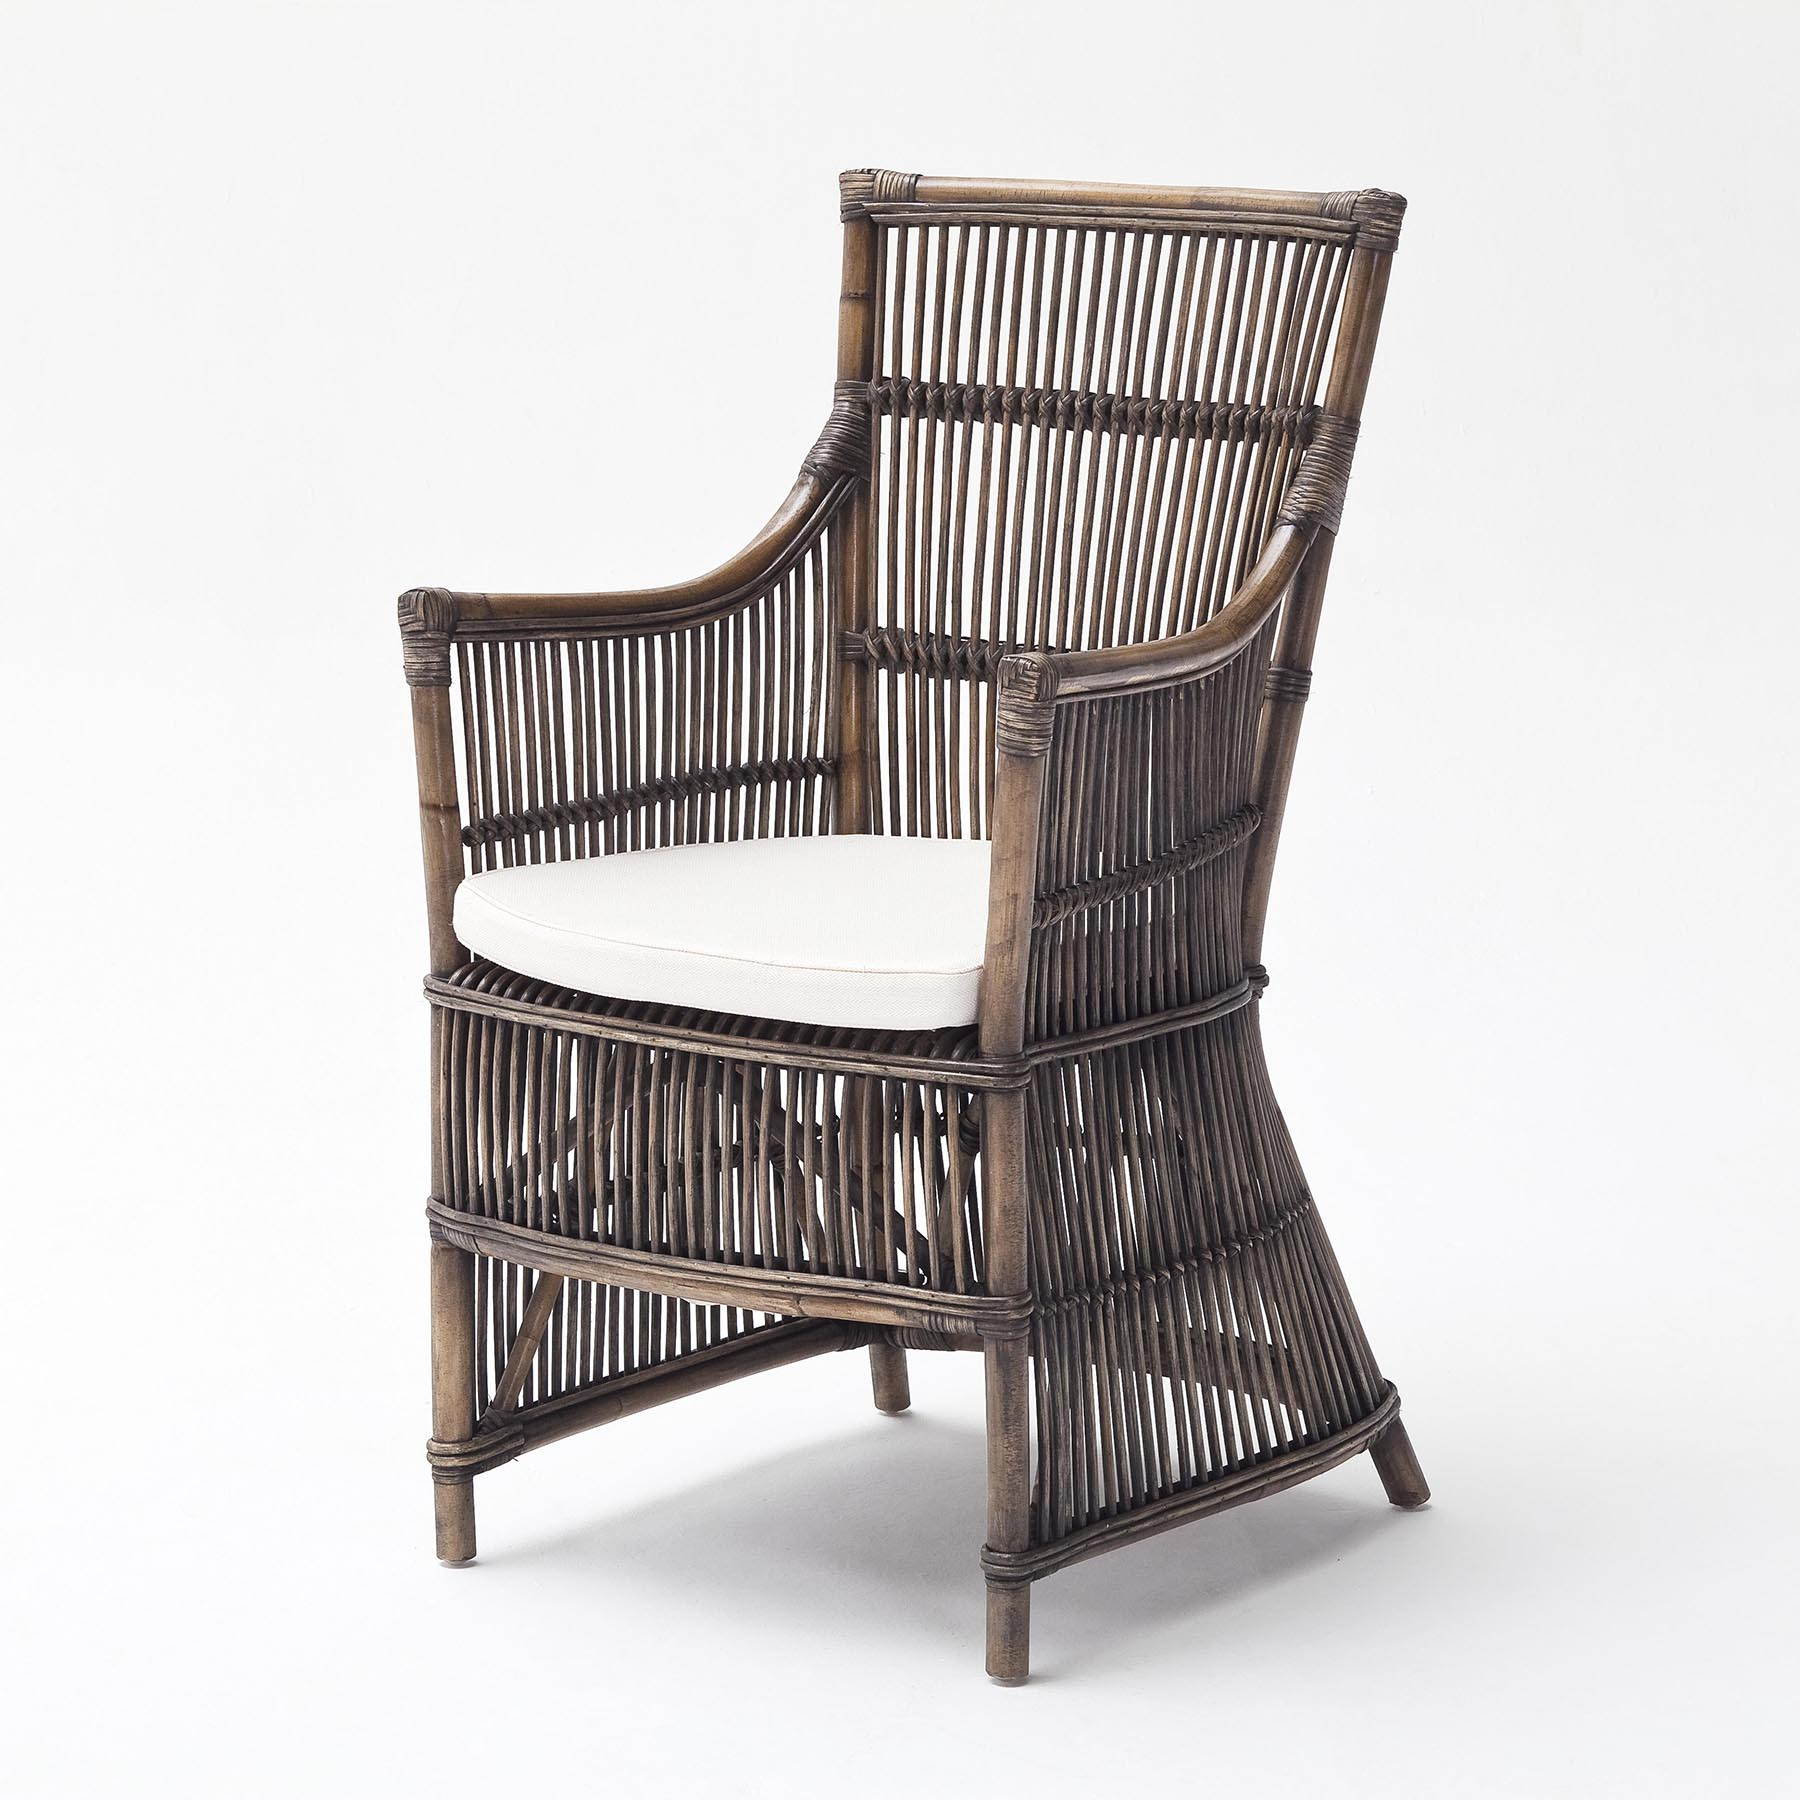 Lounge Chairs For Bedroom Duchess Rattan Wicker Chair Rattan Furniture Manufacturer